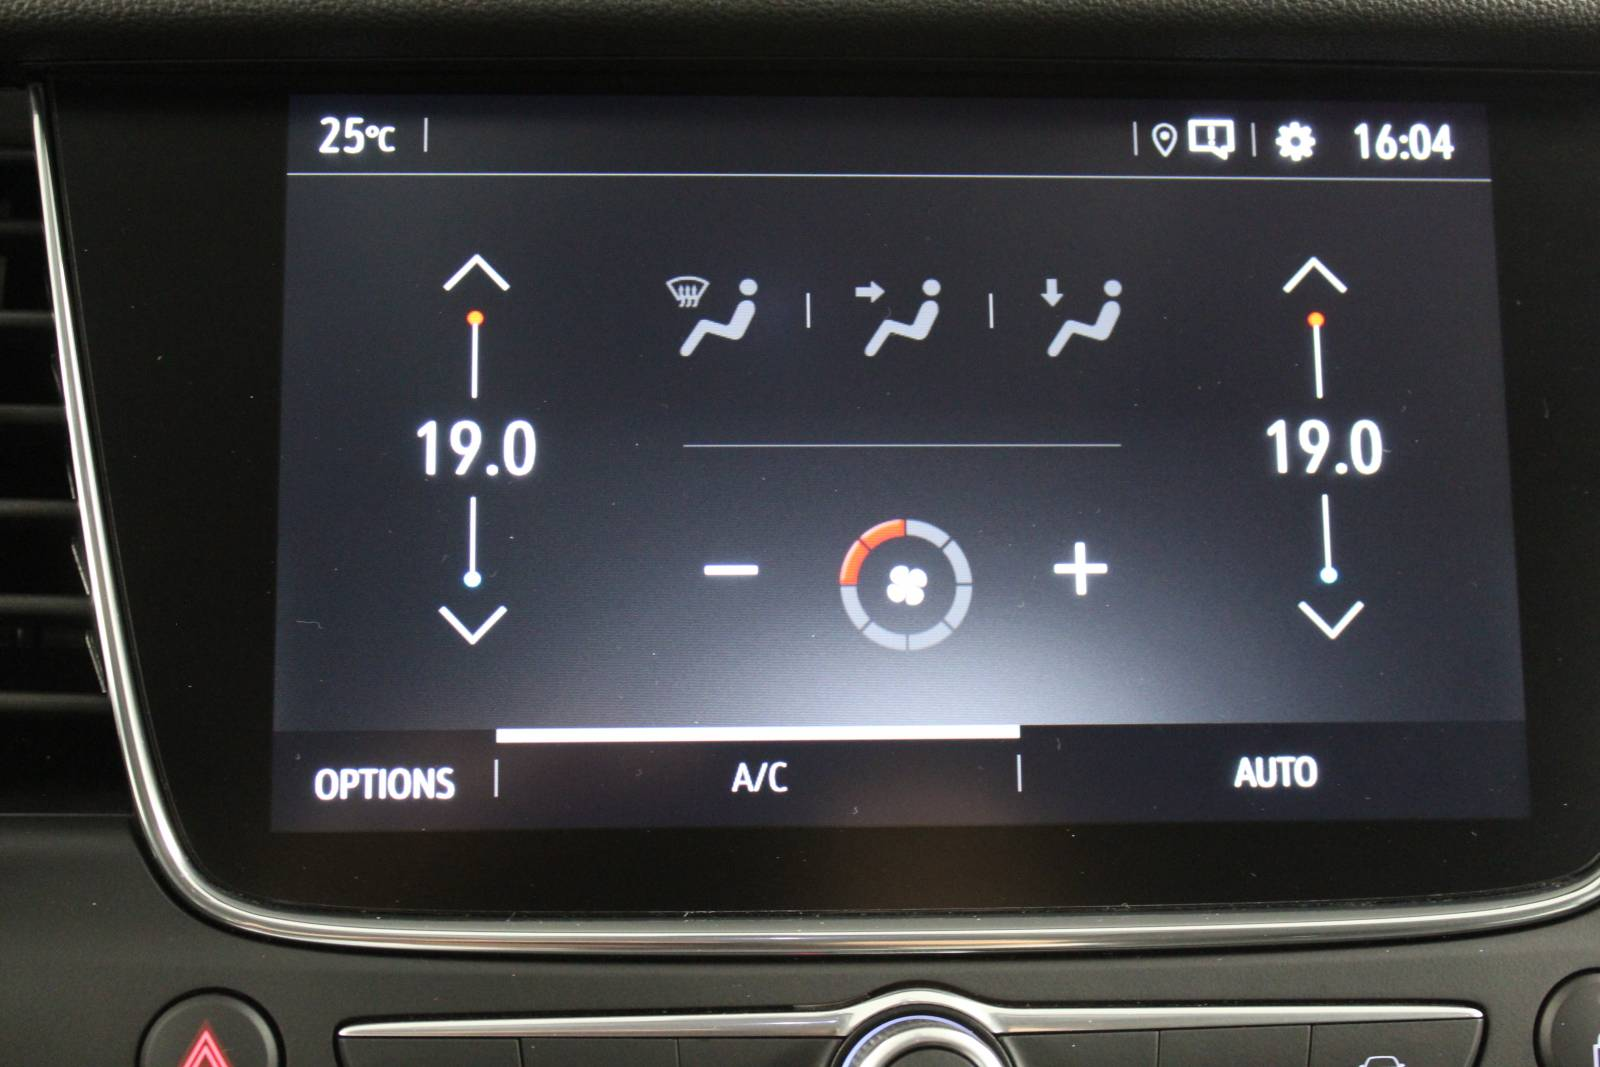 OPEL Grandland X Hybrid4 300 ch AWD BVA8 - véhicule d'occasion - Site Internet Faurie - Opel - Faurie Motor Charente Angouleme - 16160 - Gond-Pontouvre - 25